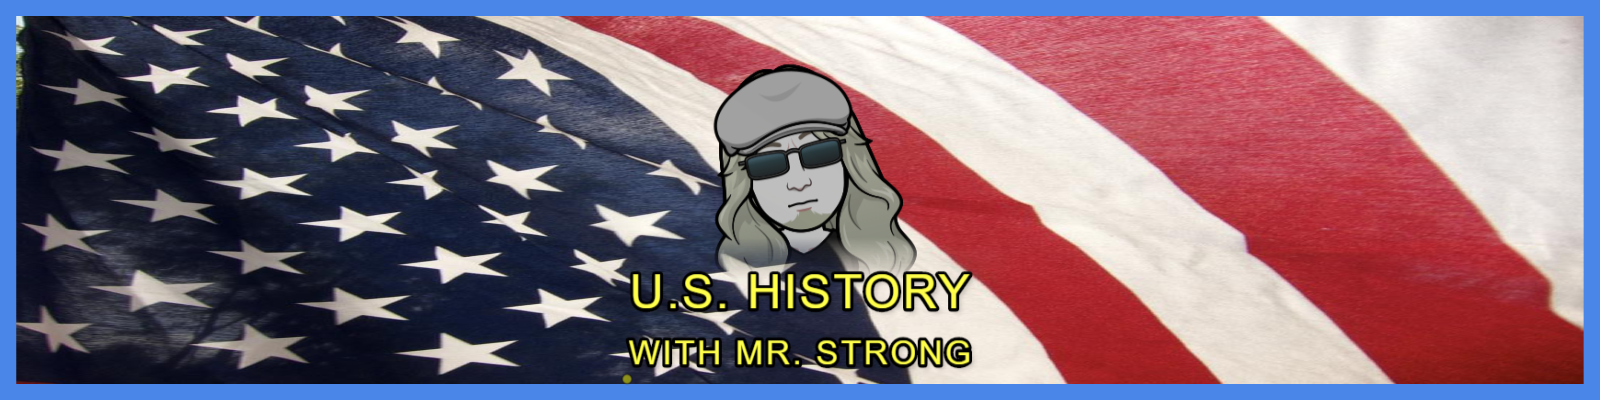 U.S. History With Mr. Strong Banner